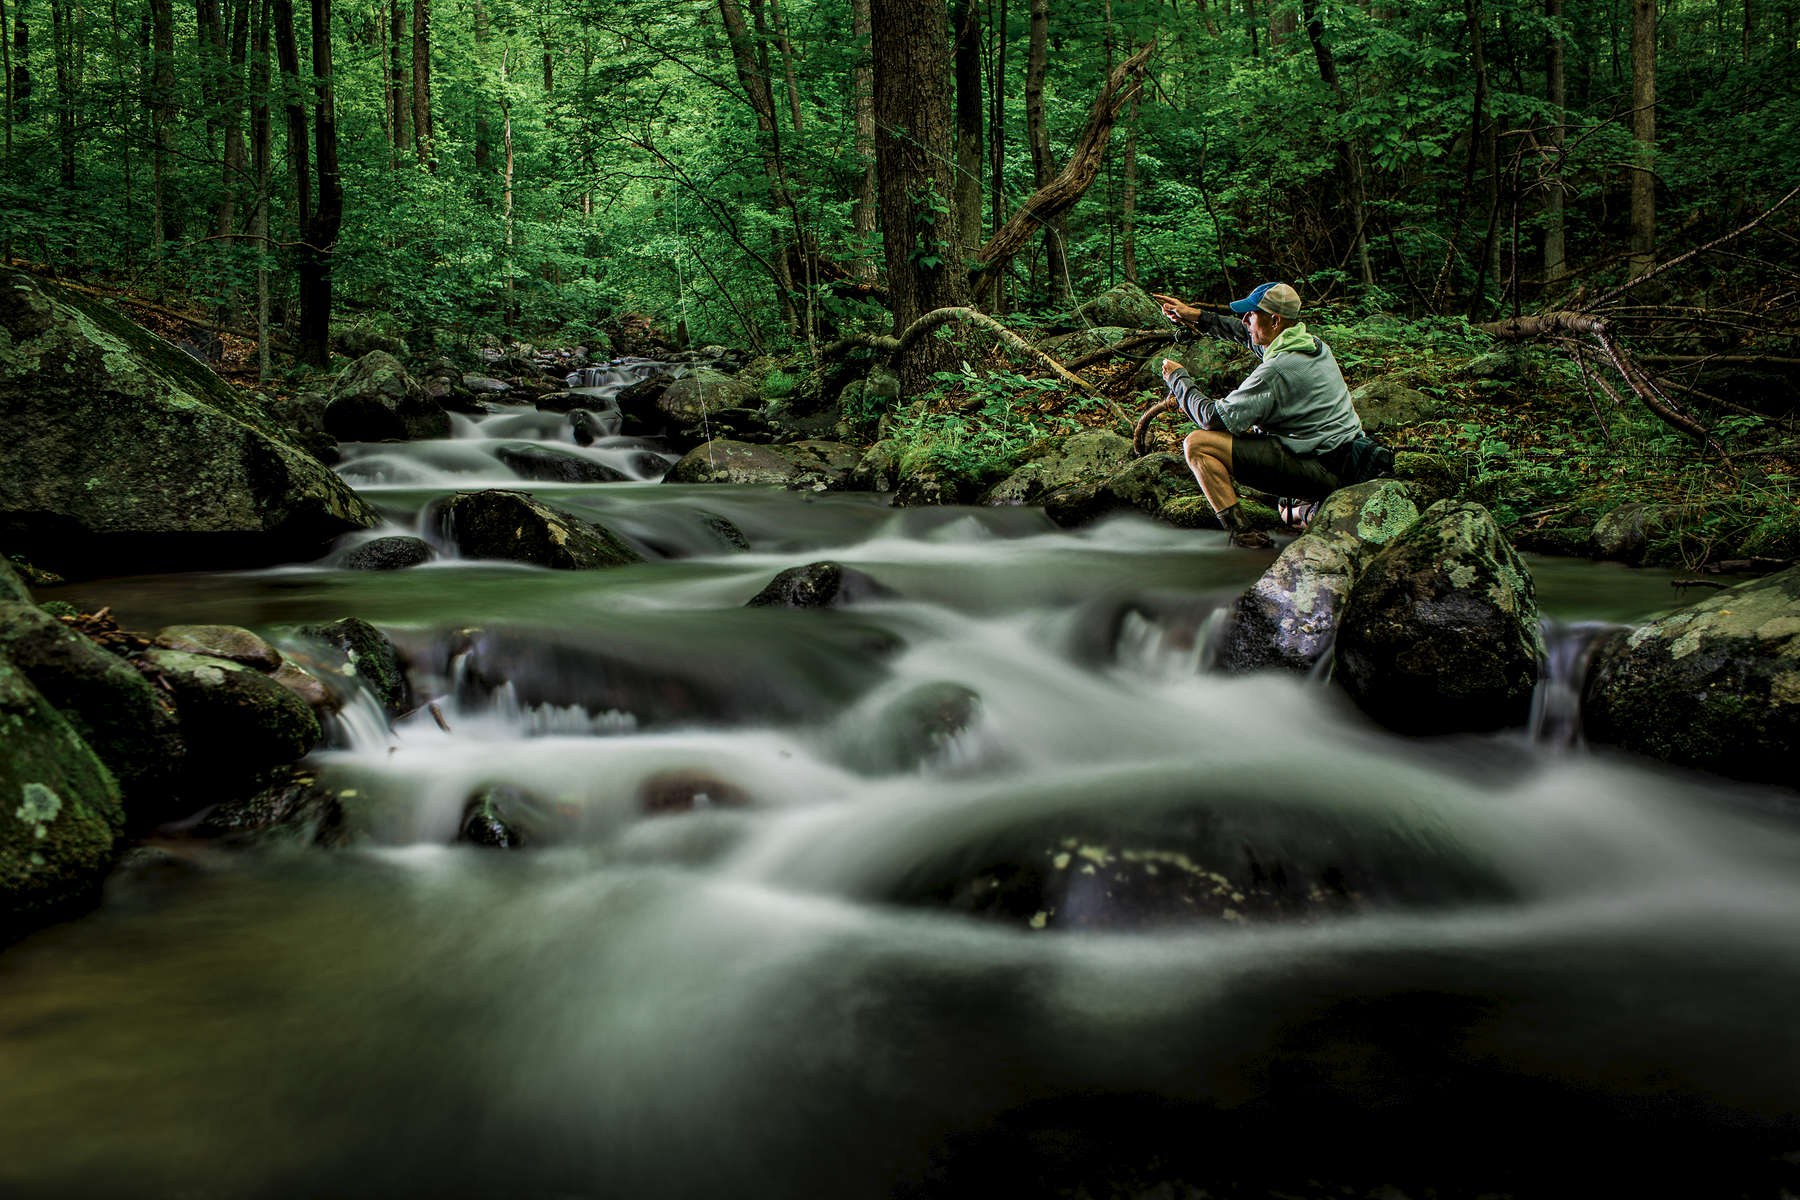 Fly fishing for Brook and rainbow trout in Blue Ridge Mountains of Virginia.